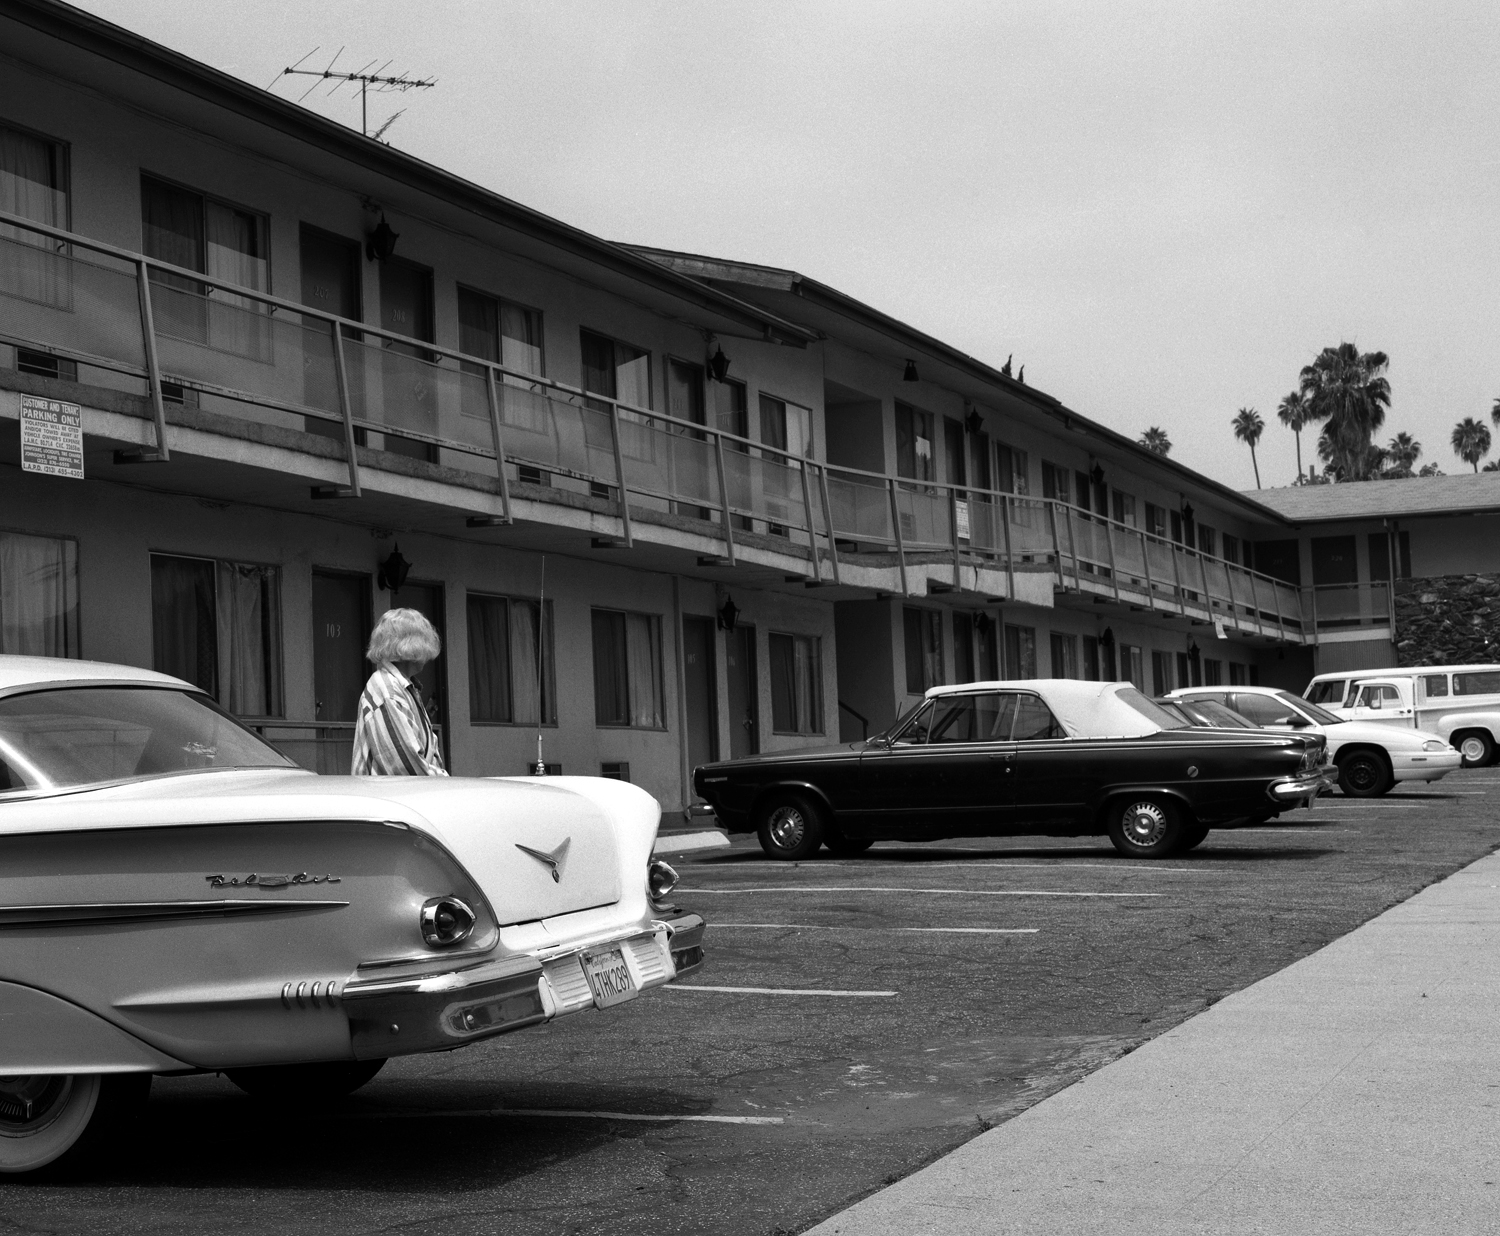 Bel Air Car Motel